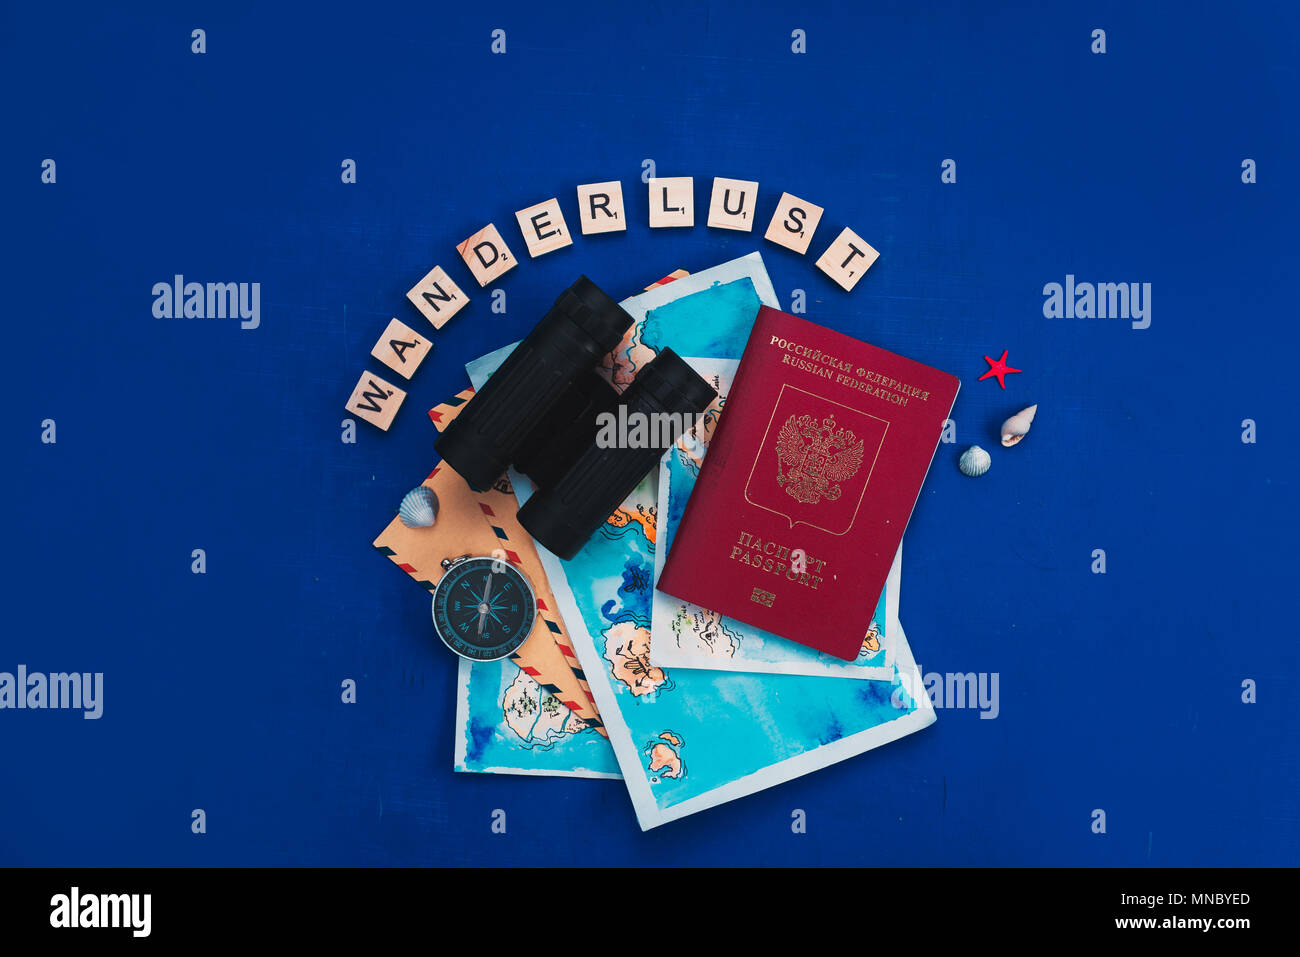 Travel and exploration concept with watercolor maps, passport, compass, binoculars, envelopes, magnifying glass, and Wanderlust scrabble letters. Vaca - Stock Image